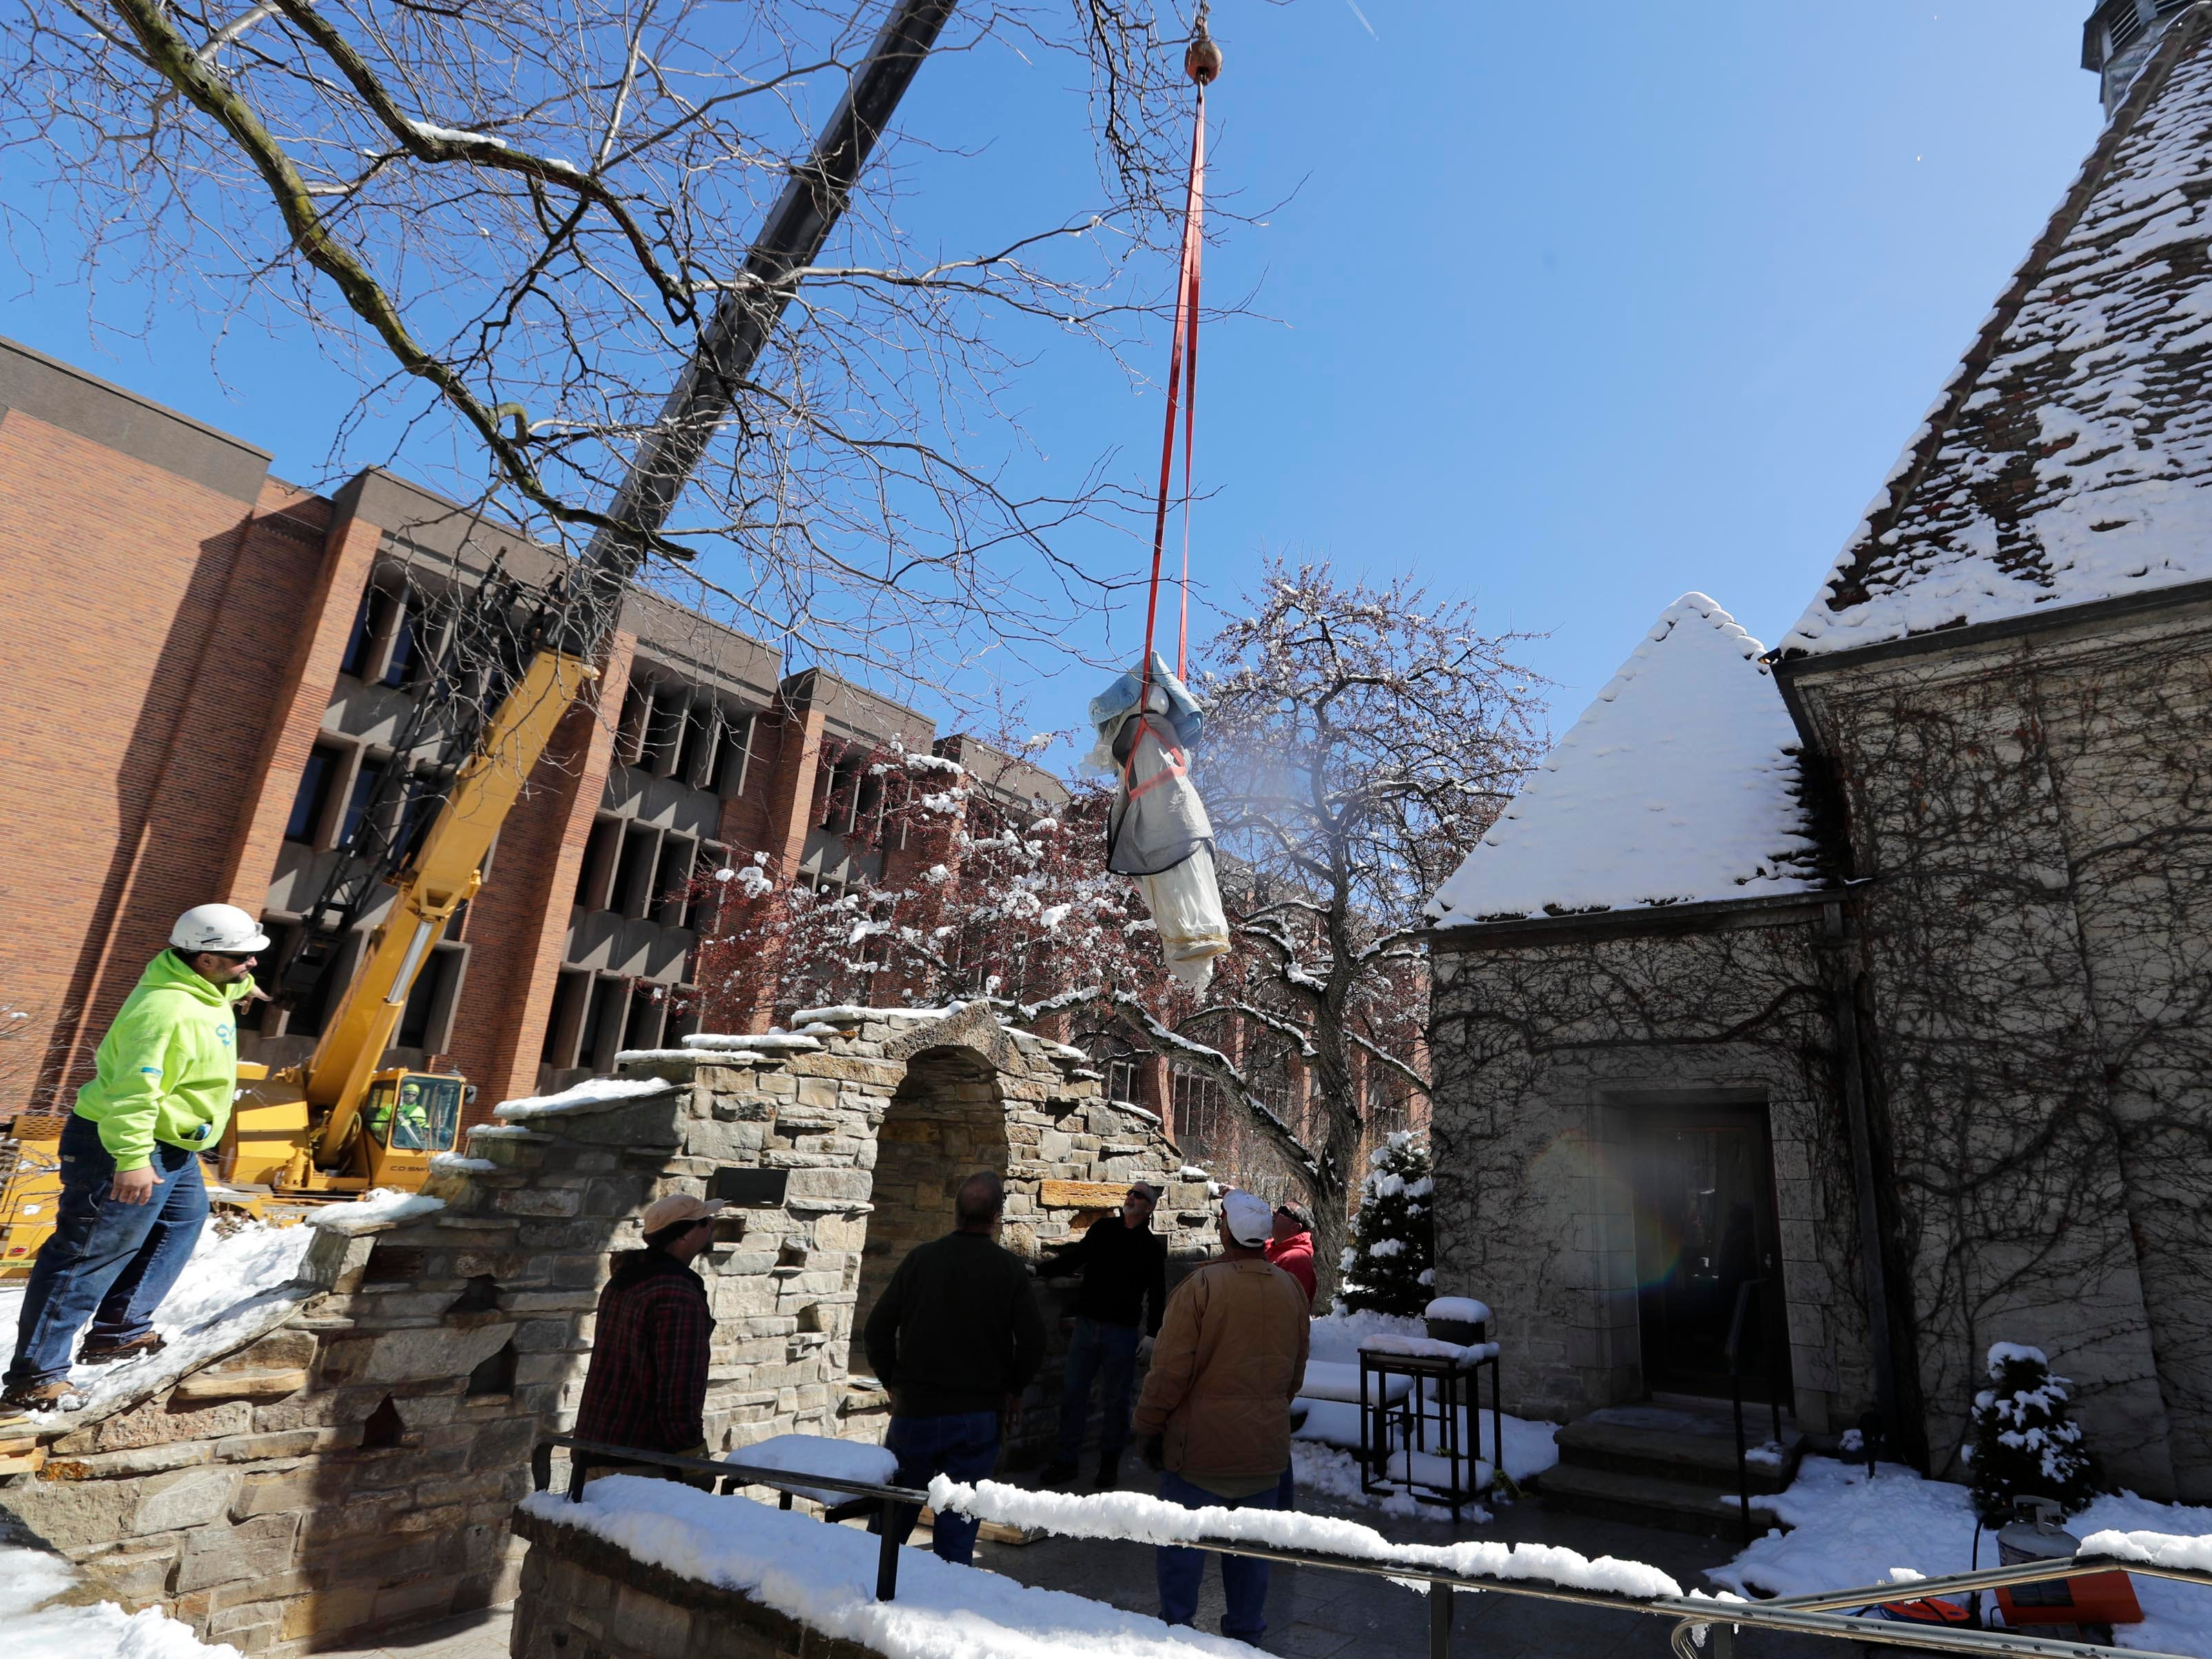 Workers install a statue of Mary in the Grotto of the Blessed Virgin Mary behind the St. Joan of Arc Chapel on the south side of the Marquette University campus Monday. It is meant to be a quiet place of reflection on campus. It was commissioned from the Demetz Art Studio of Ortisei, Italy.